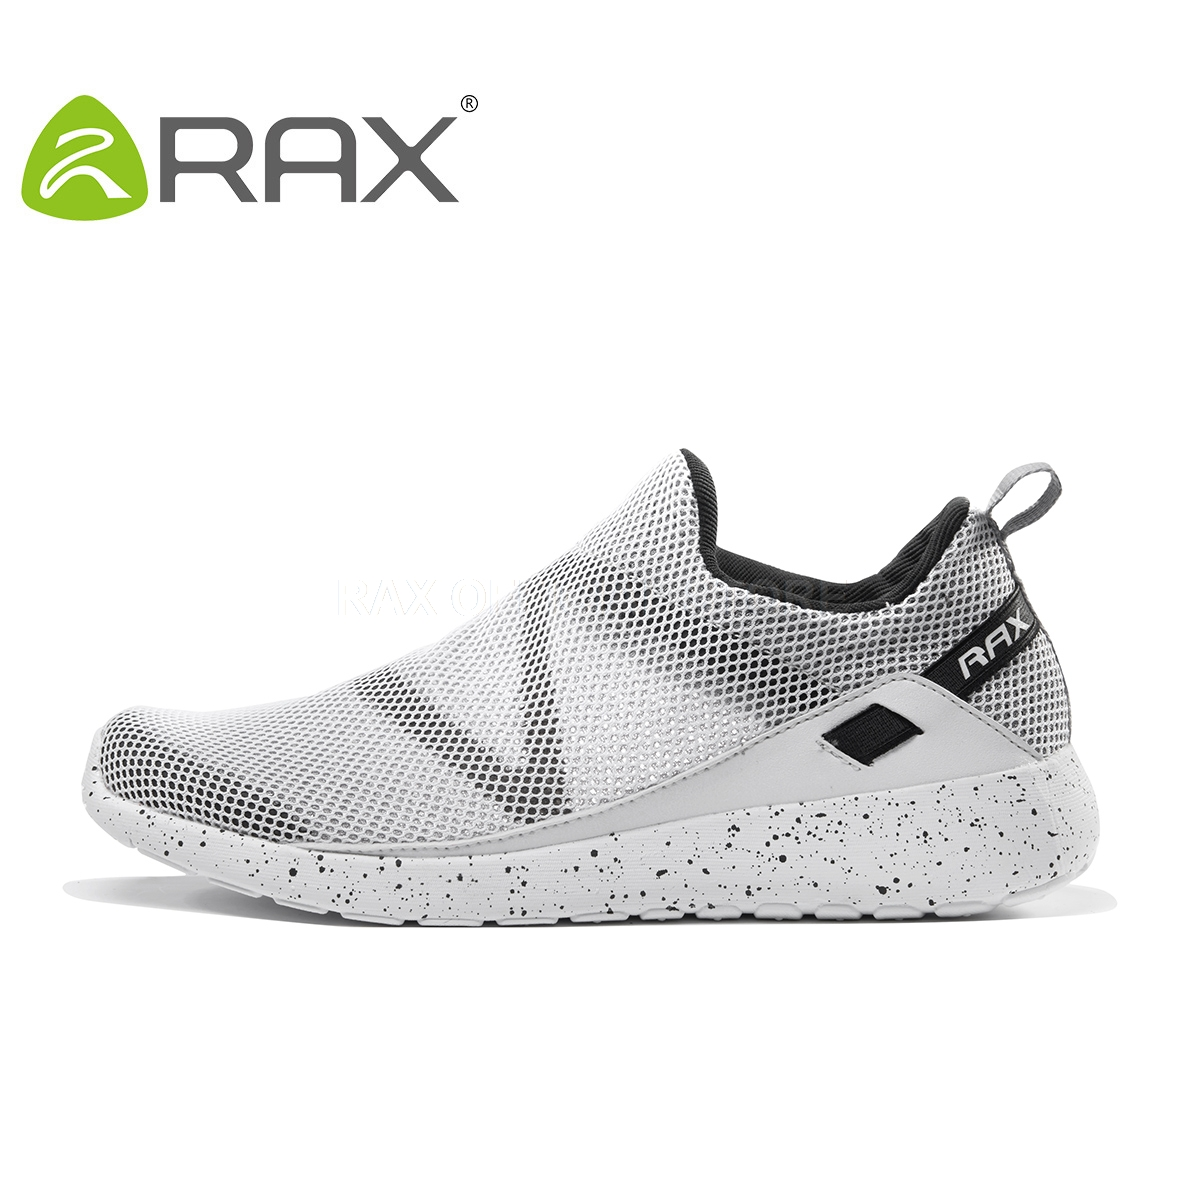 RAX Sports Shoes For Women Outdoor Breathable Women Running Shoes Women Sneakers Sport Running Shoes Jogging Training Shoes peak sport men outdoor bas basketball shoes medium cut breathable comfortable revolve tech sneakers athletic training boots